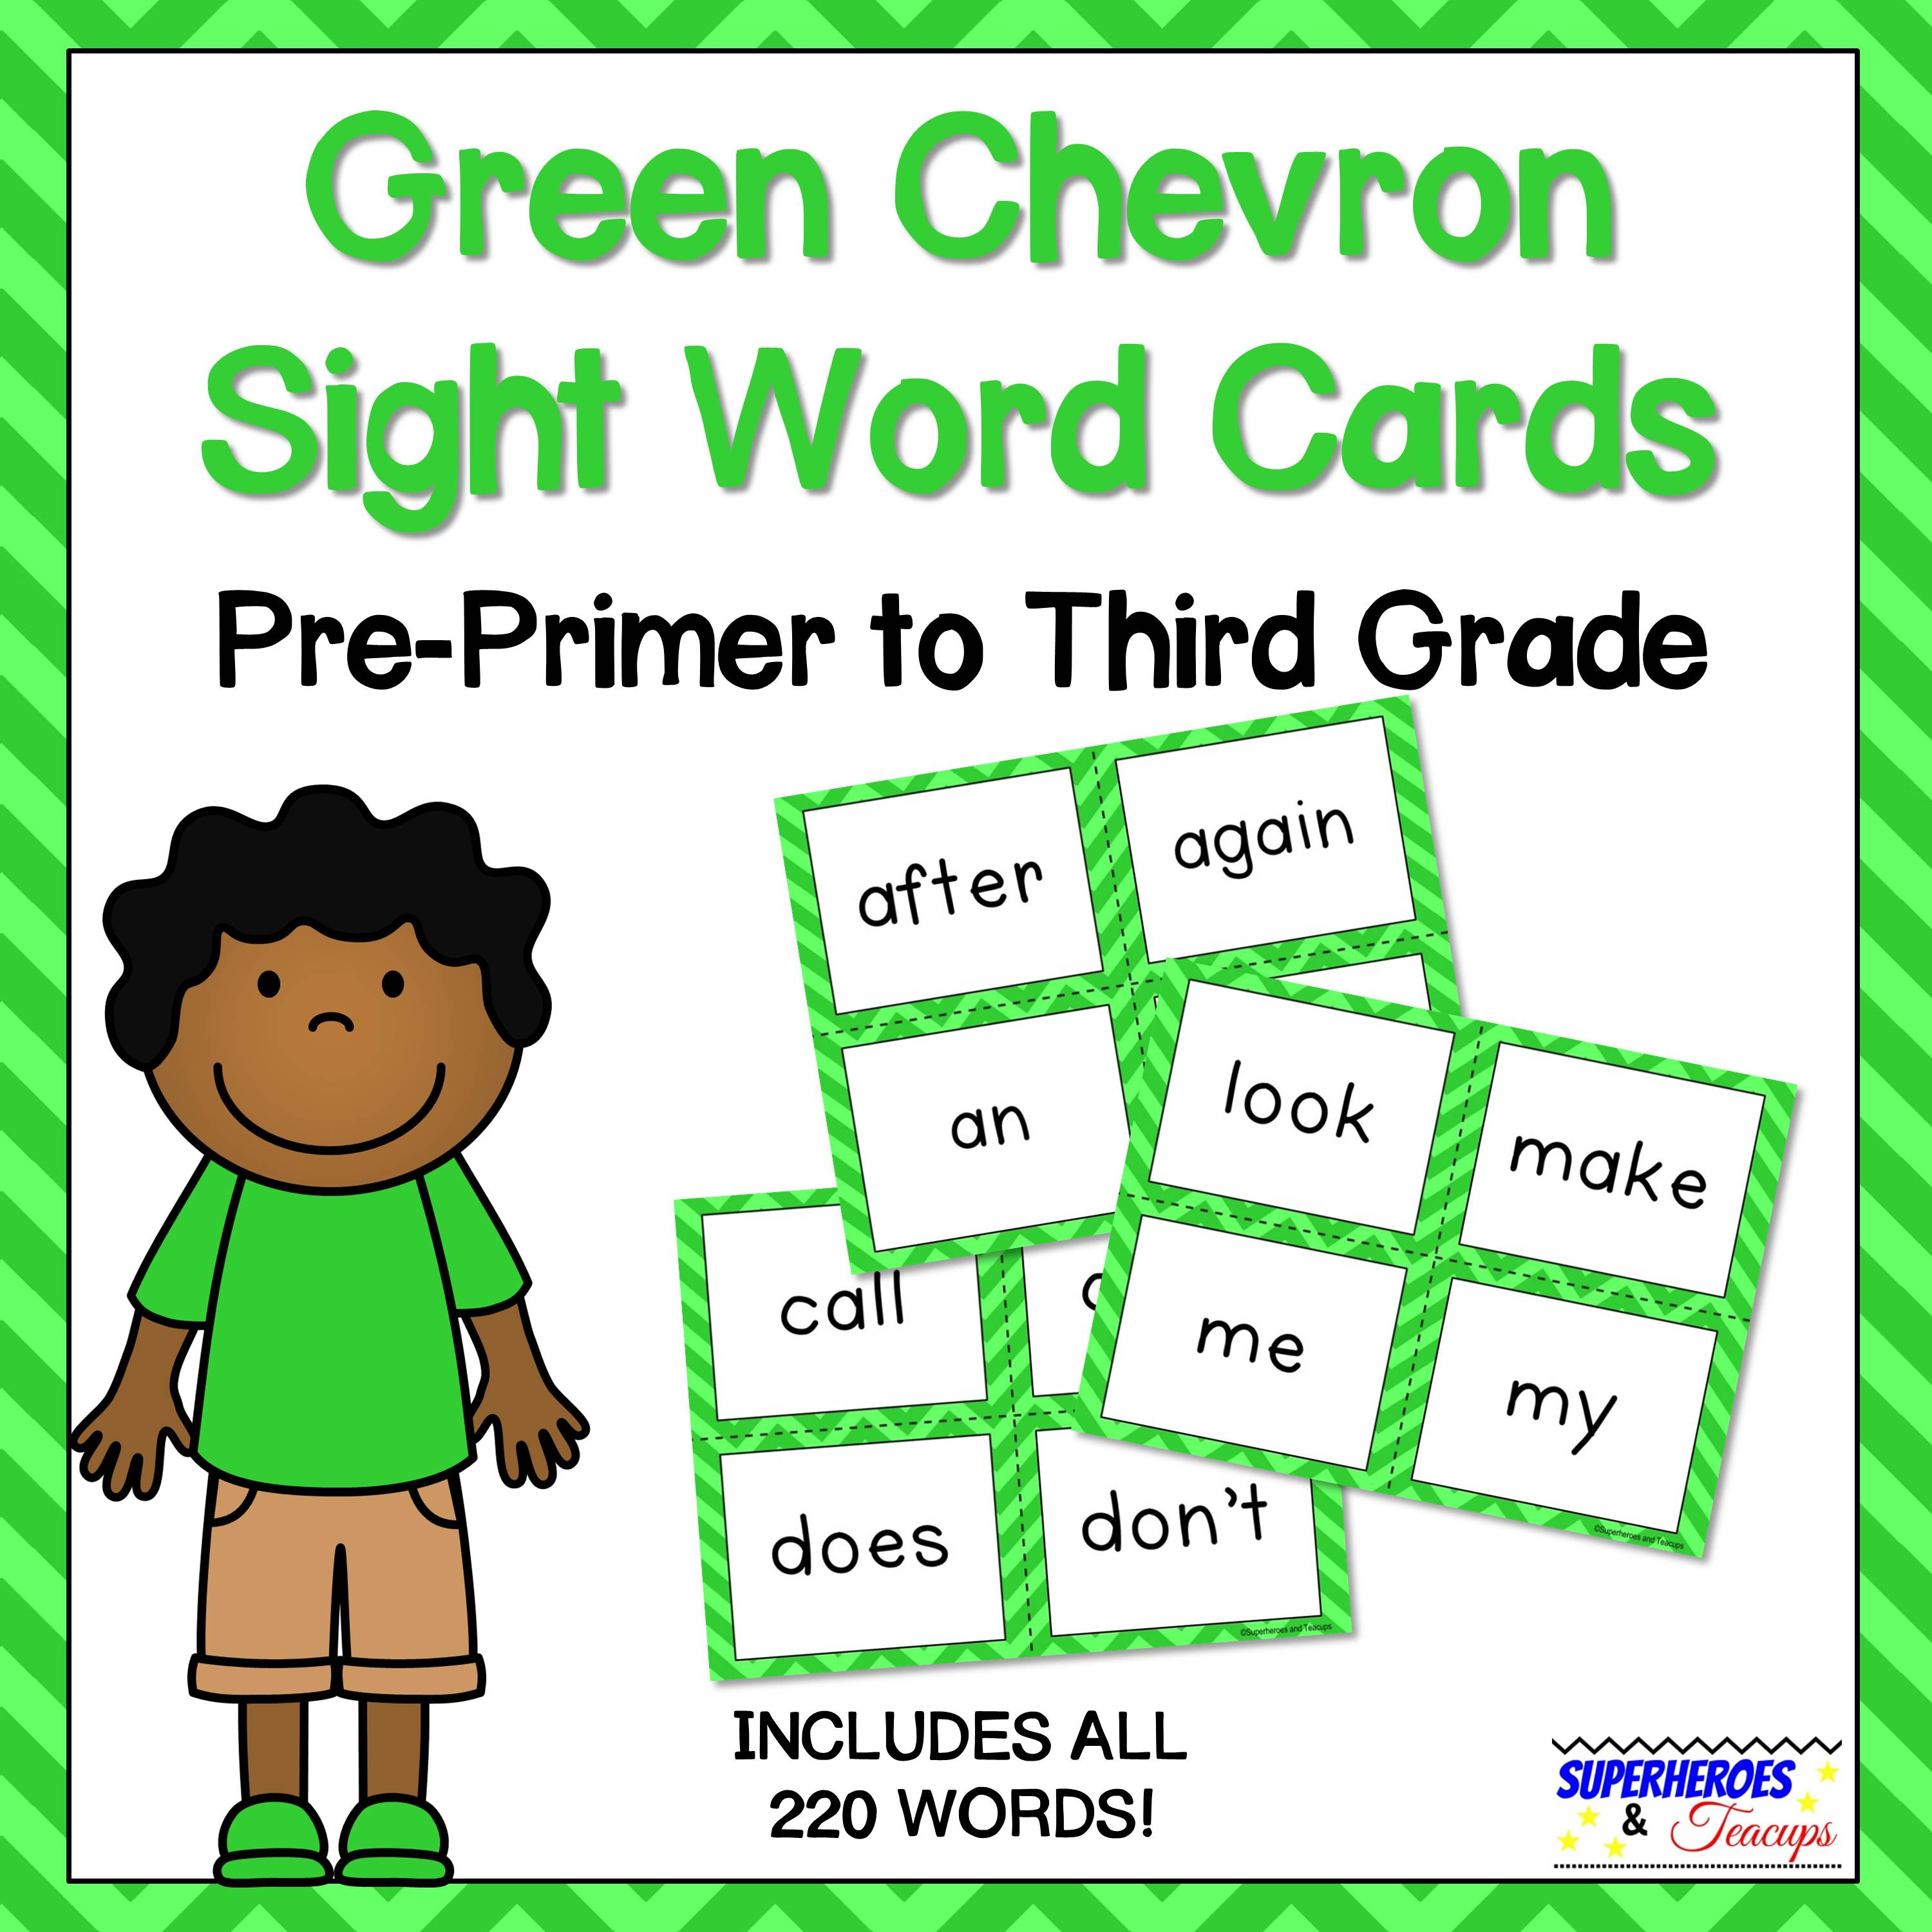 Green Chevron Sight Word Cards for Early Readers